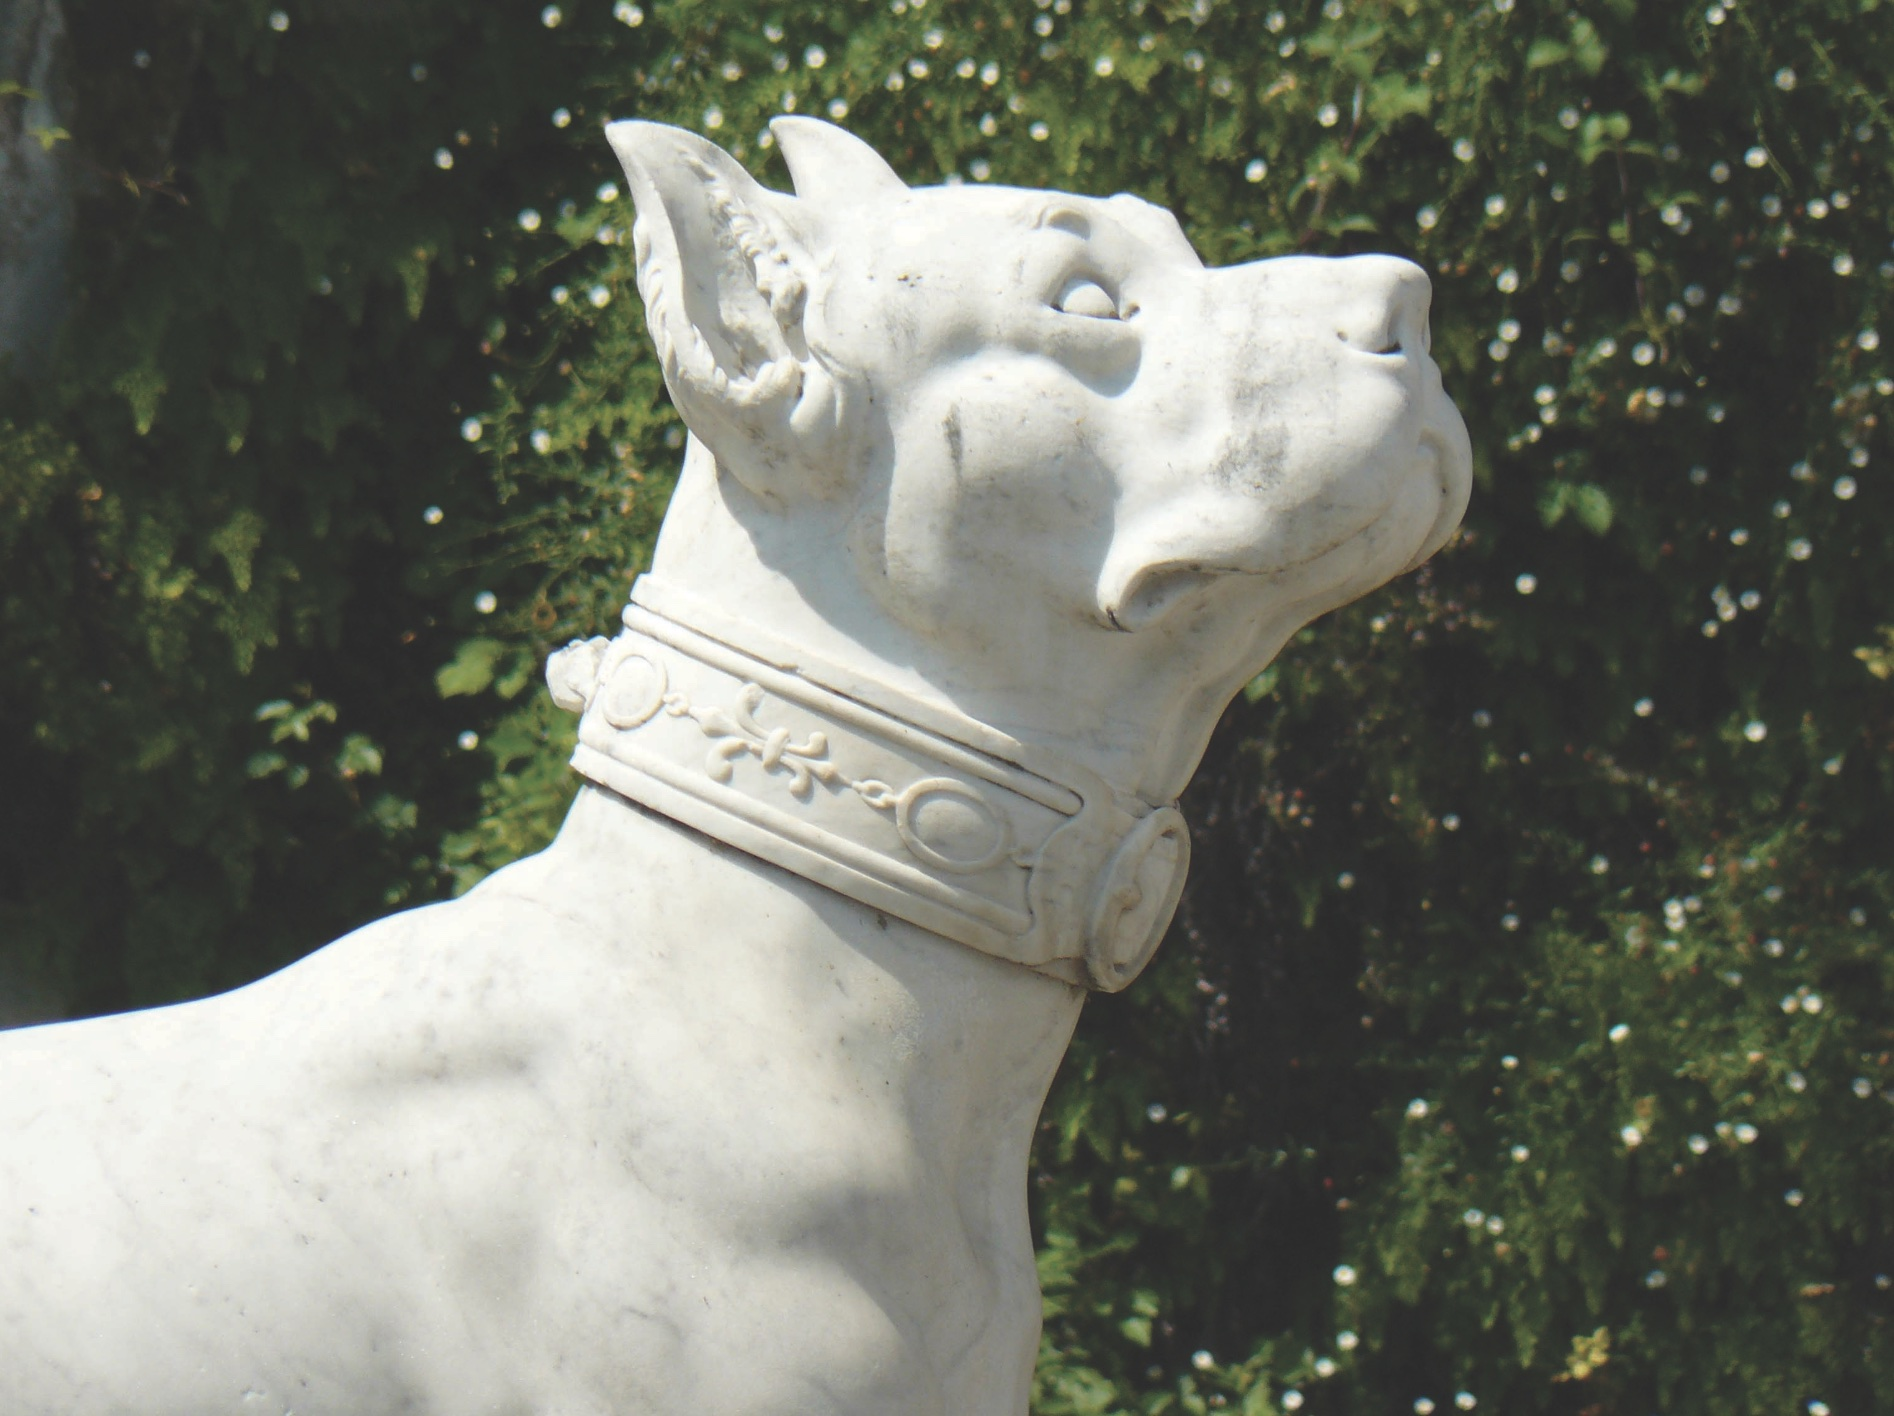 The well-developed masseter muscles and slightly shorter muzzle are typical of Cane Corso type.